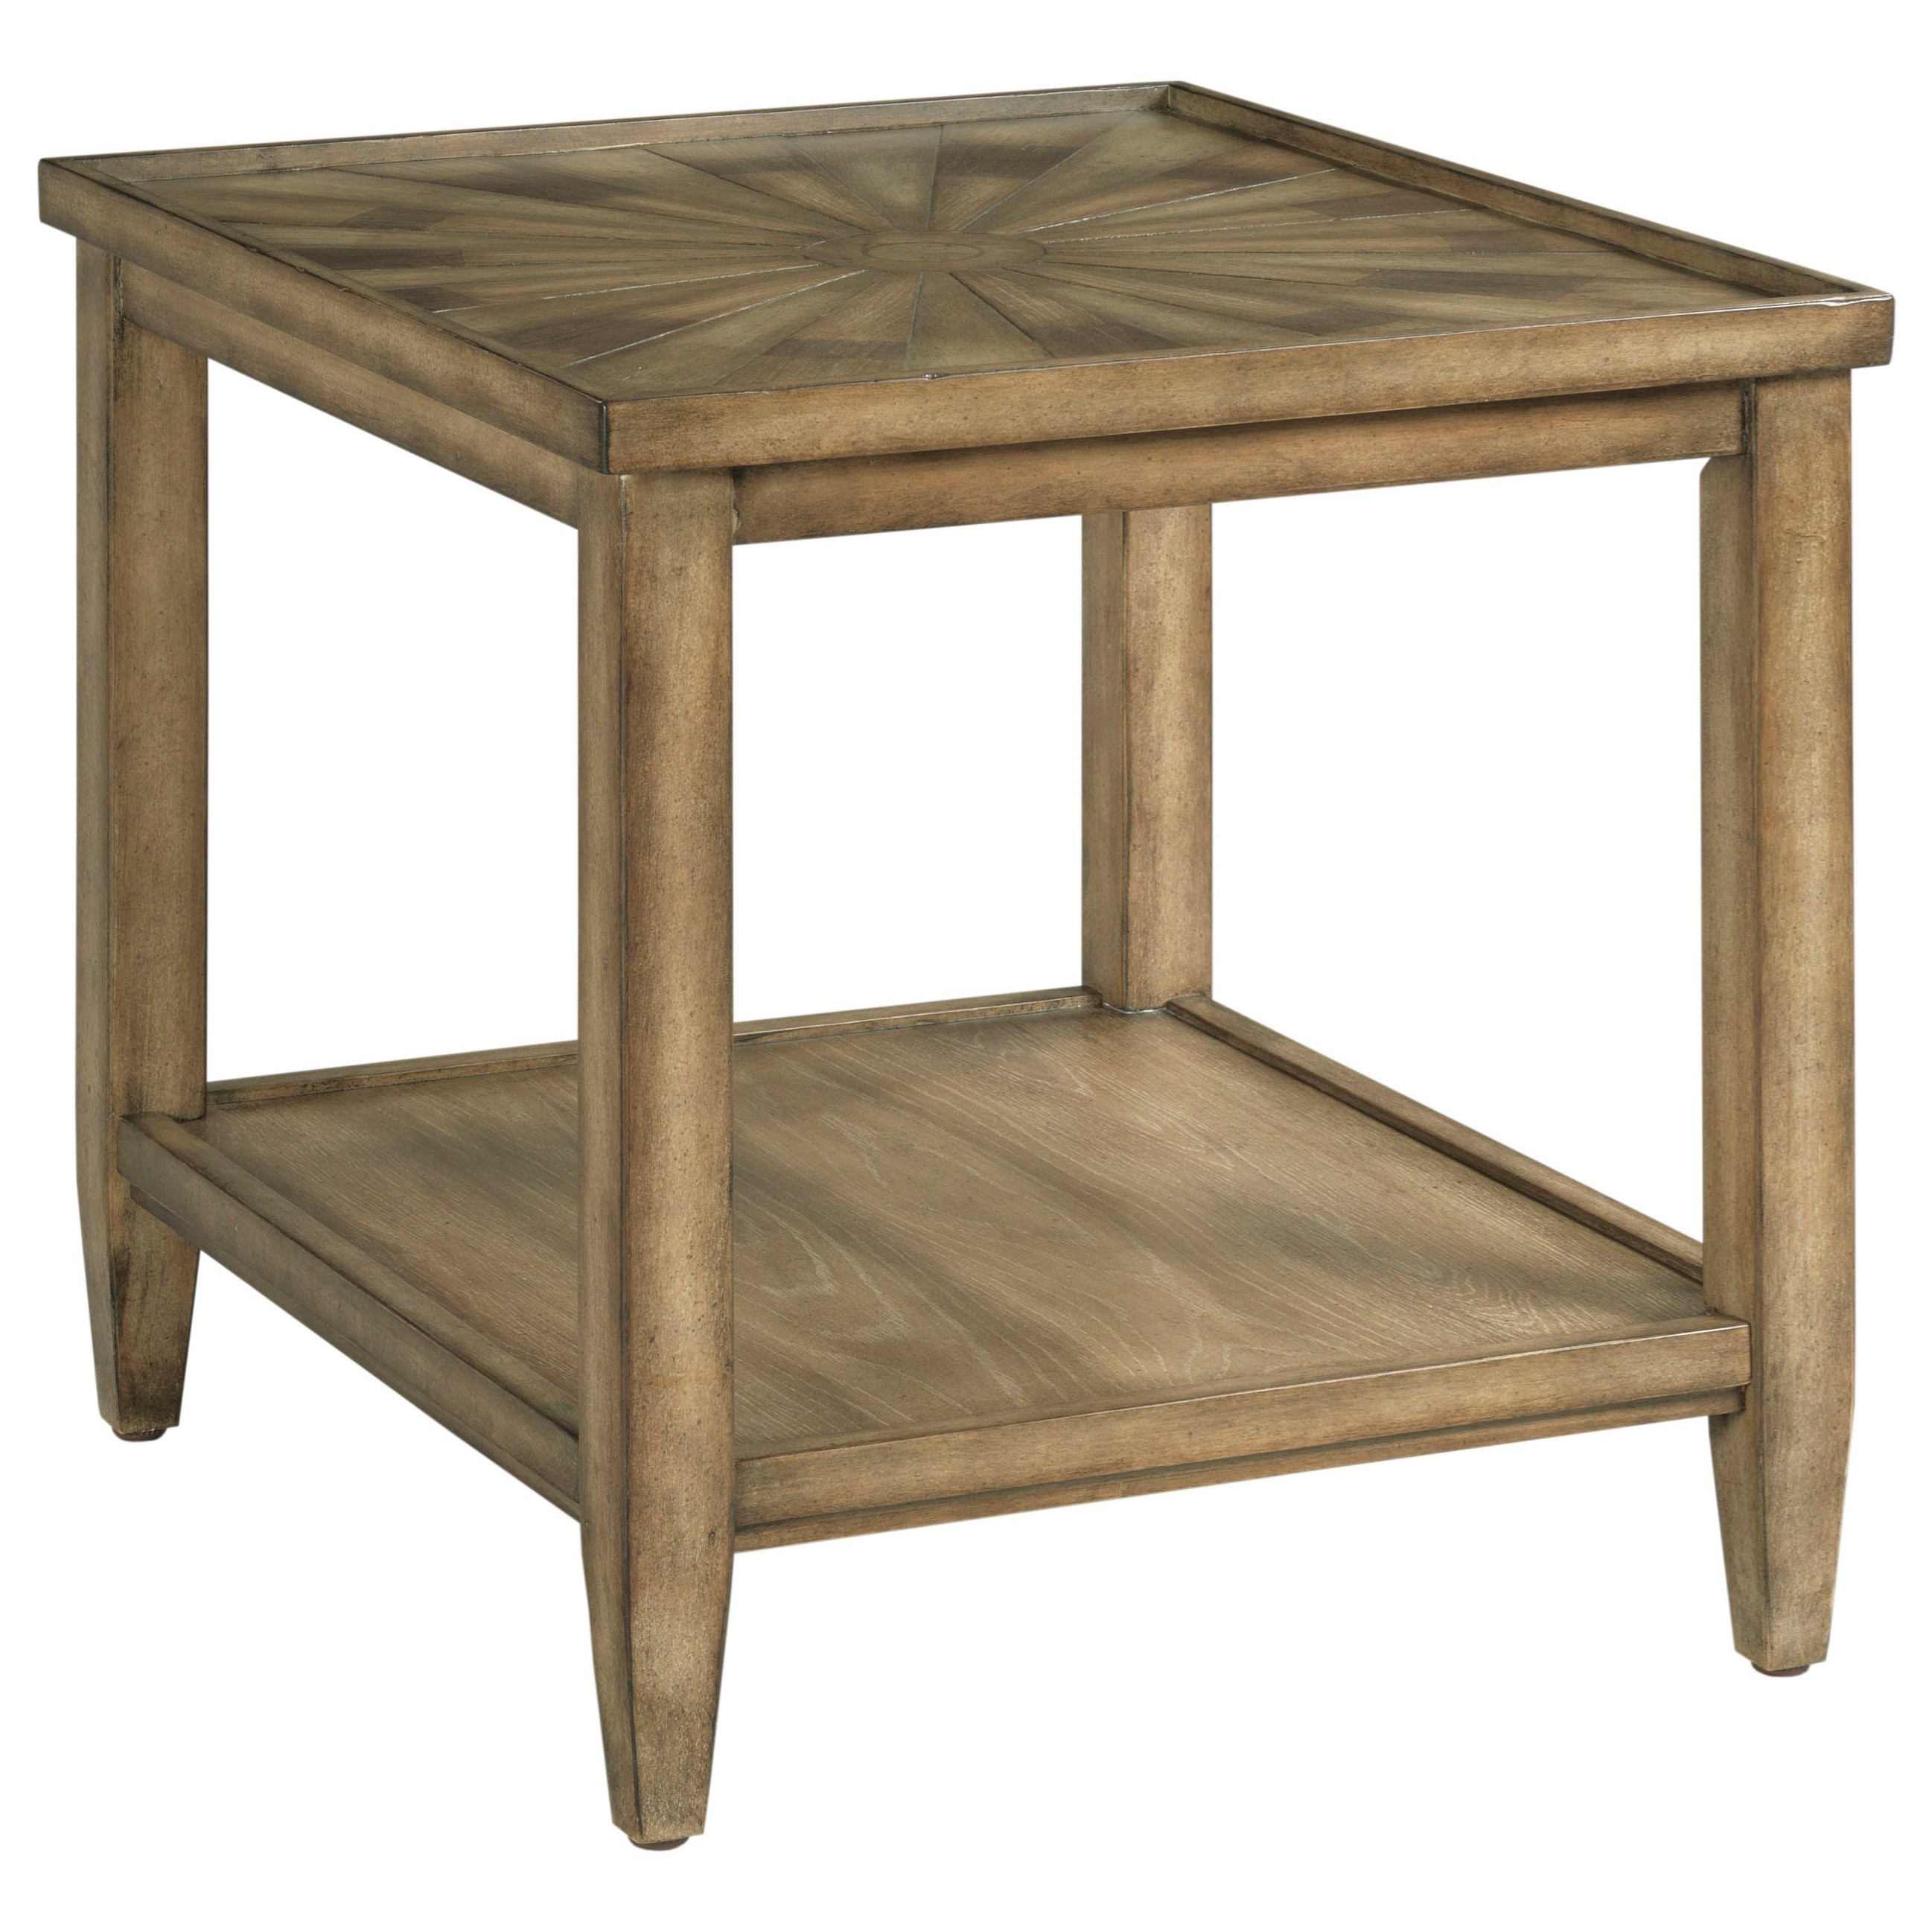 Astor Rectangular End Table by Hammary at Jordan's Home Furnishings